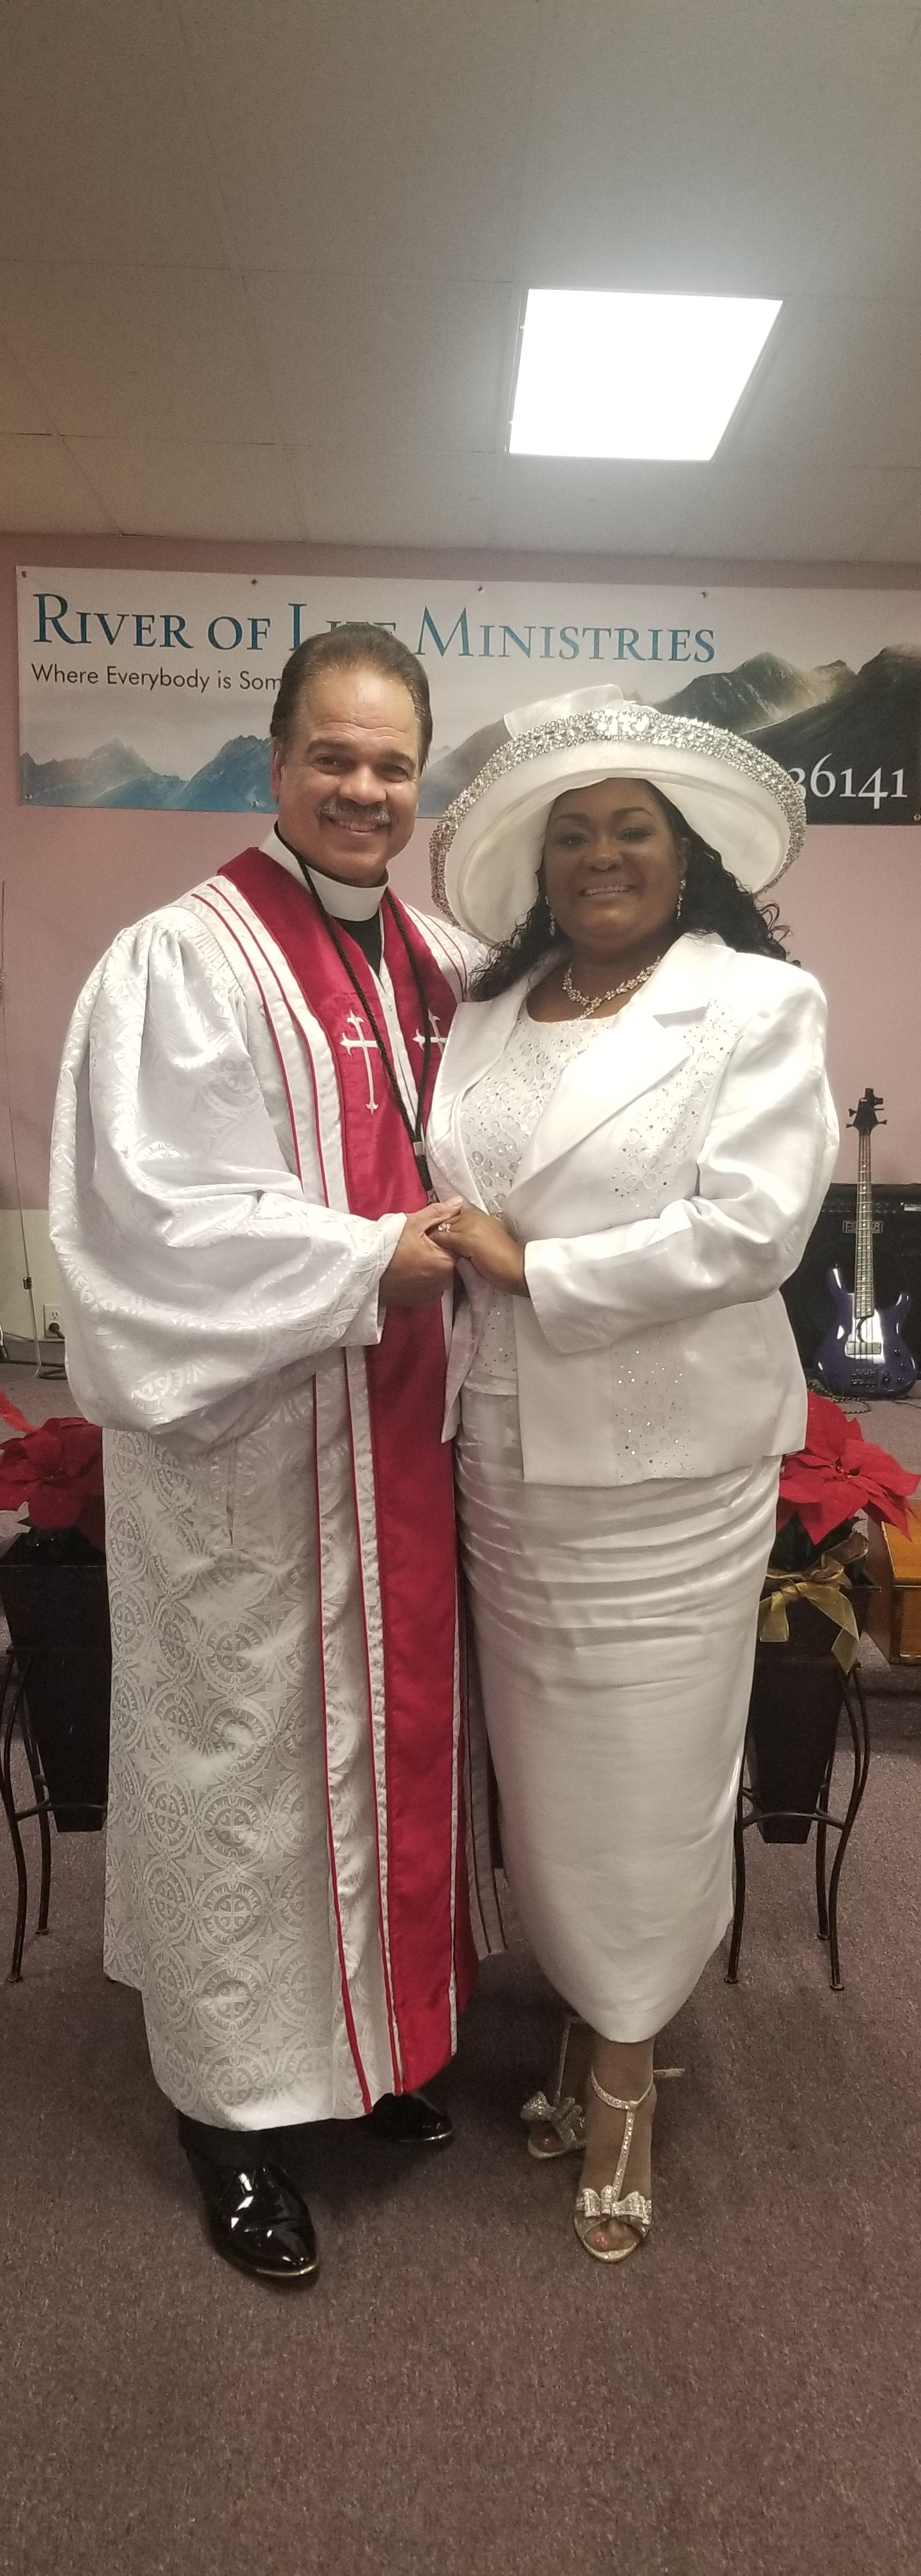 Bishop Mario D. Williams and First Lady, Missionary Rene' Williams